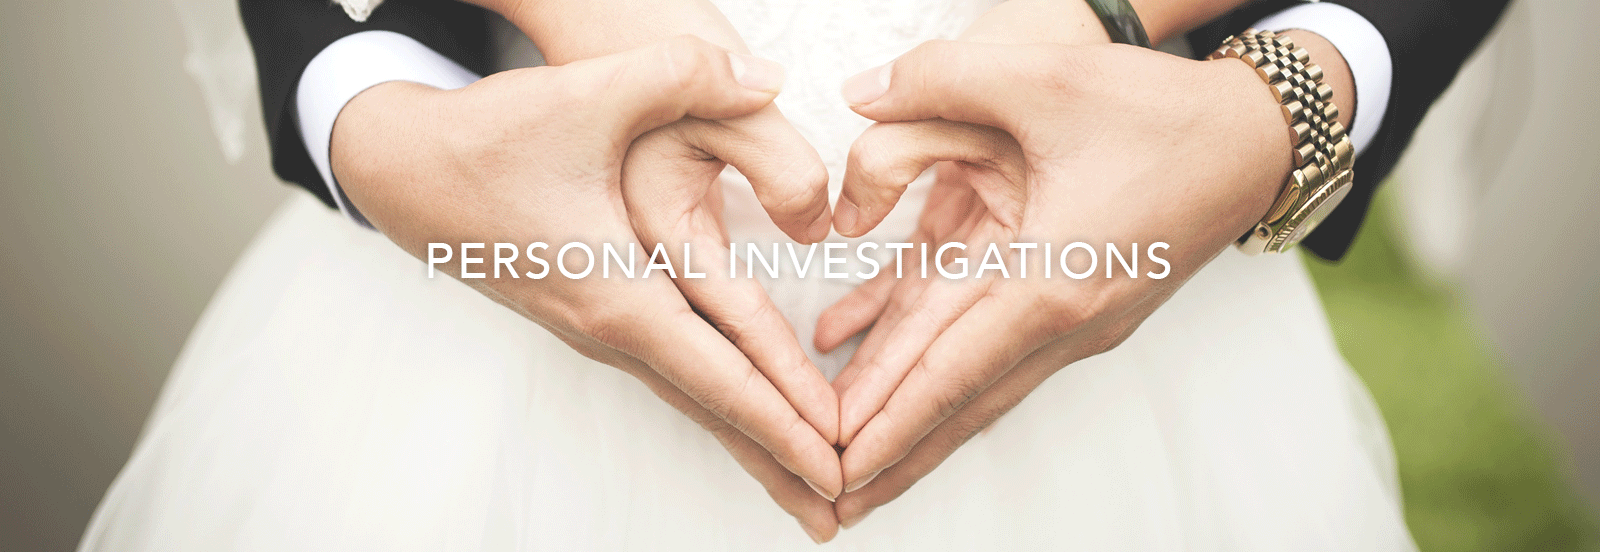 Private Investigation Services - Over 30 Years' Experience